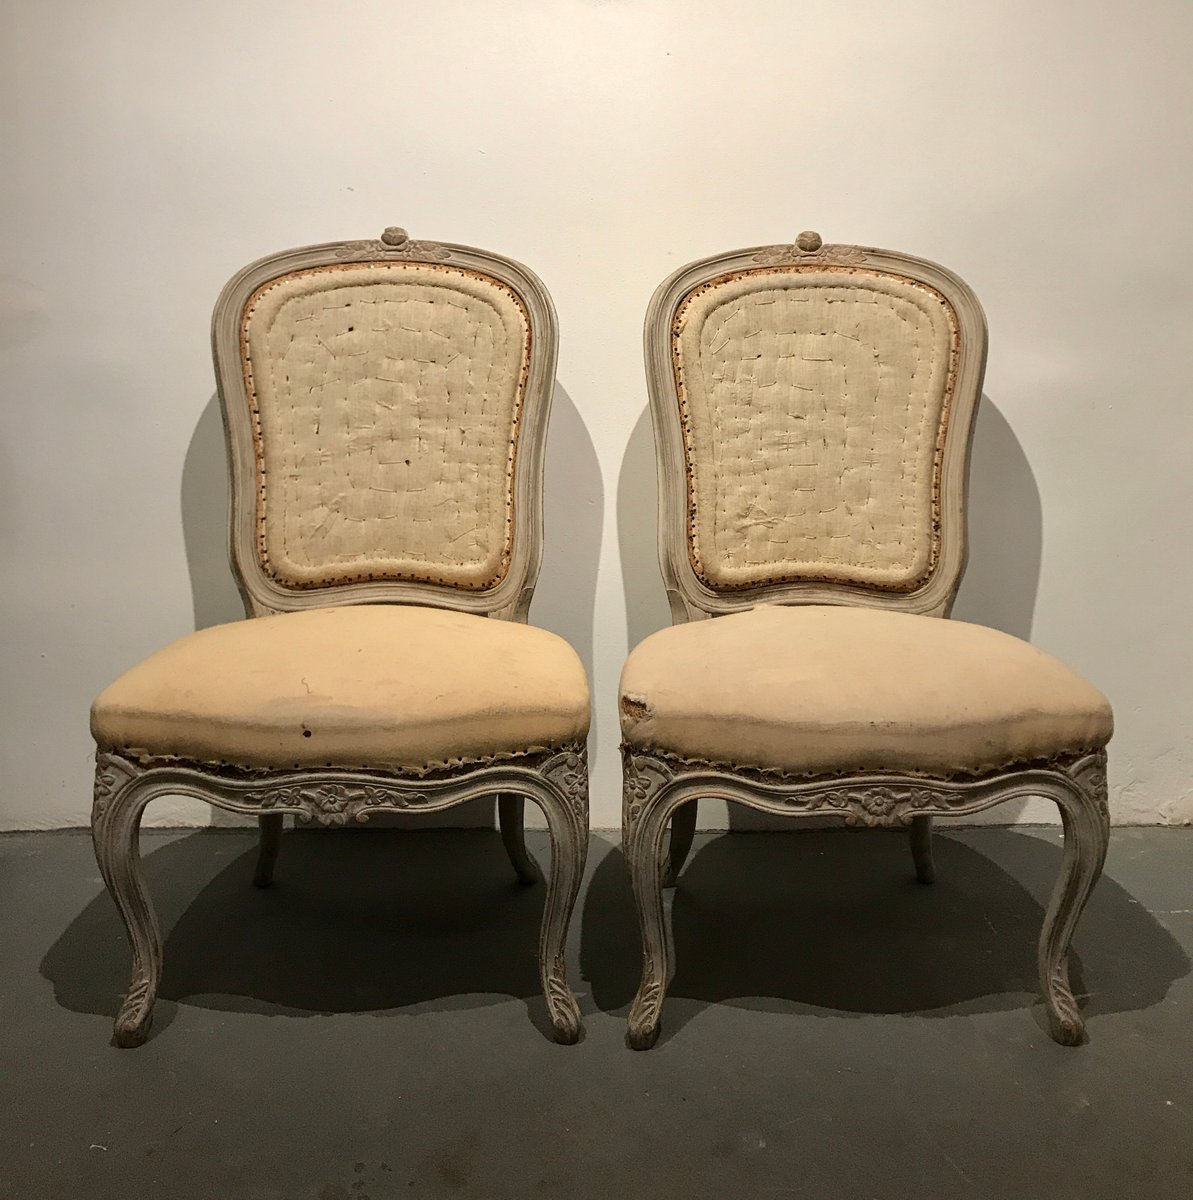 19th Century Rococo Chairs 1850s Set Of 2 For Sale At Pamono